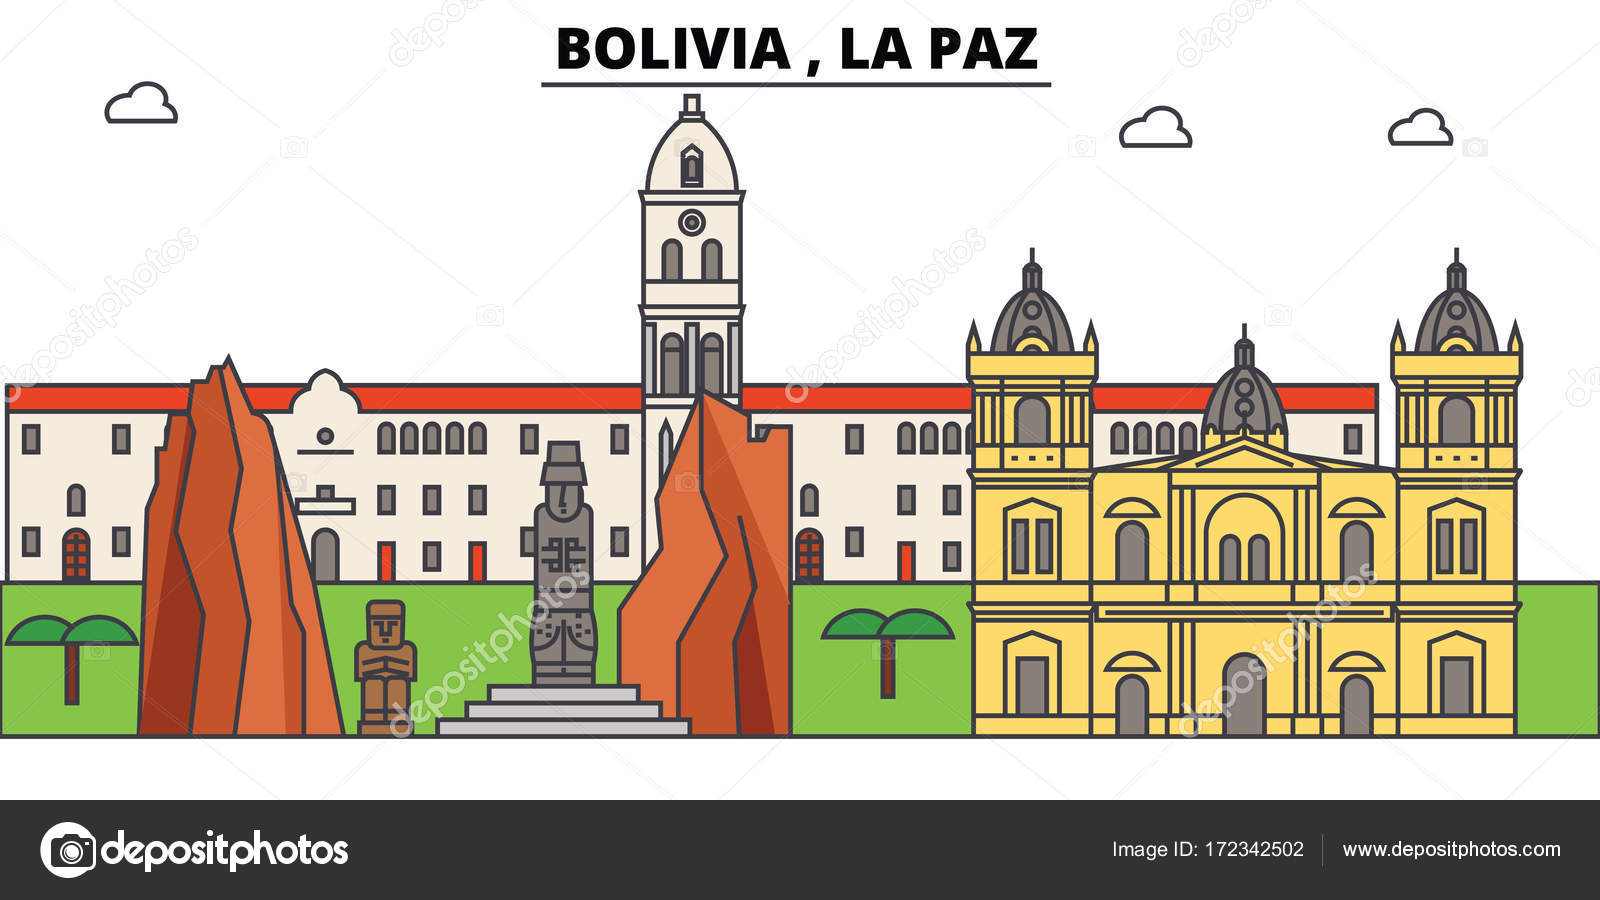 bolivia la paz outline skyline bolivian flat thin line icons landmarks illustrations